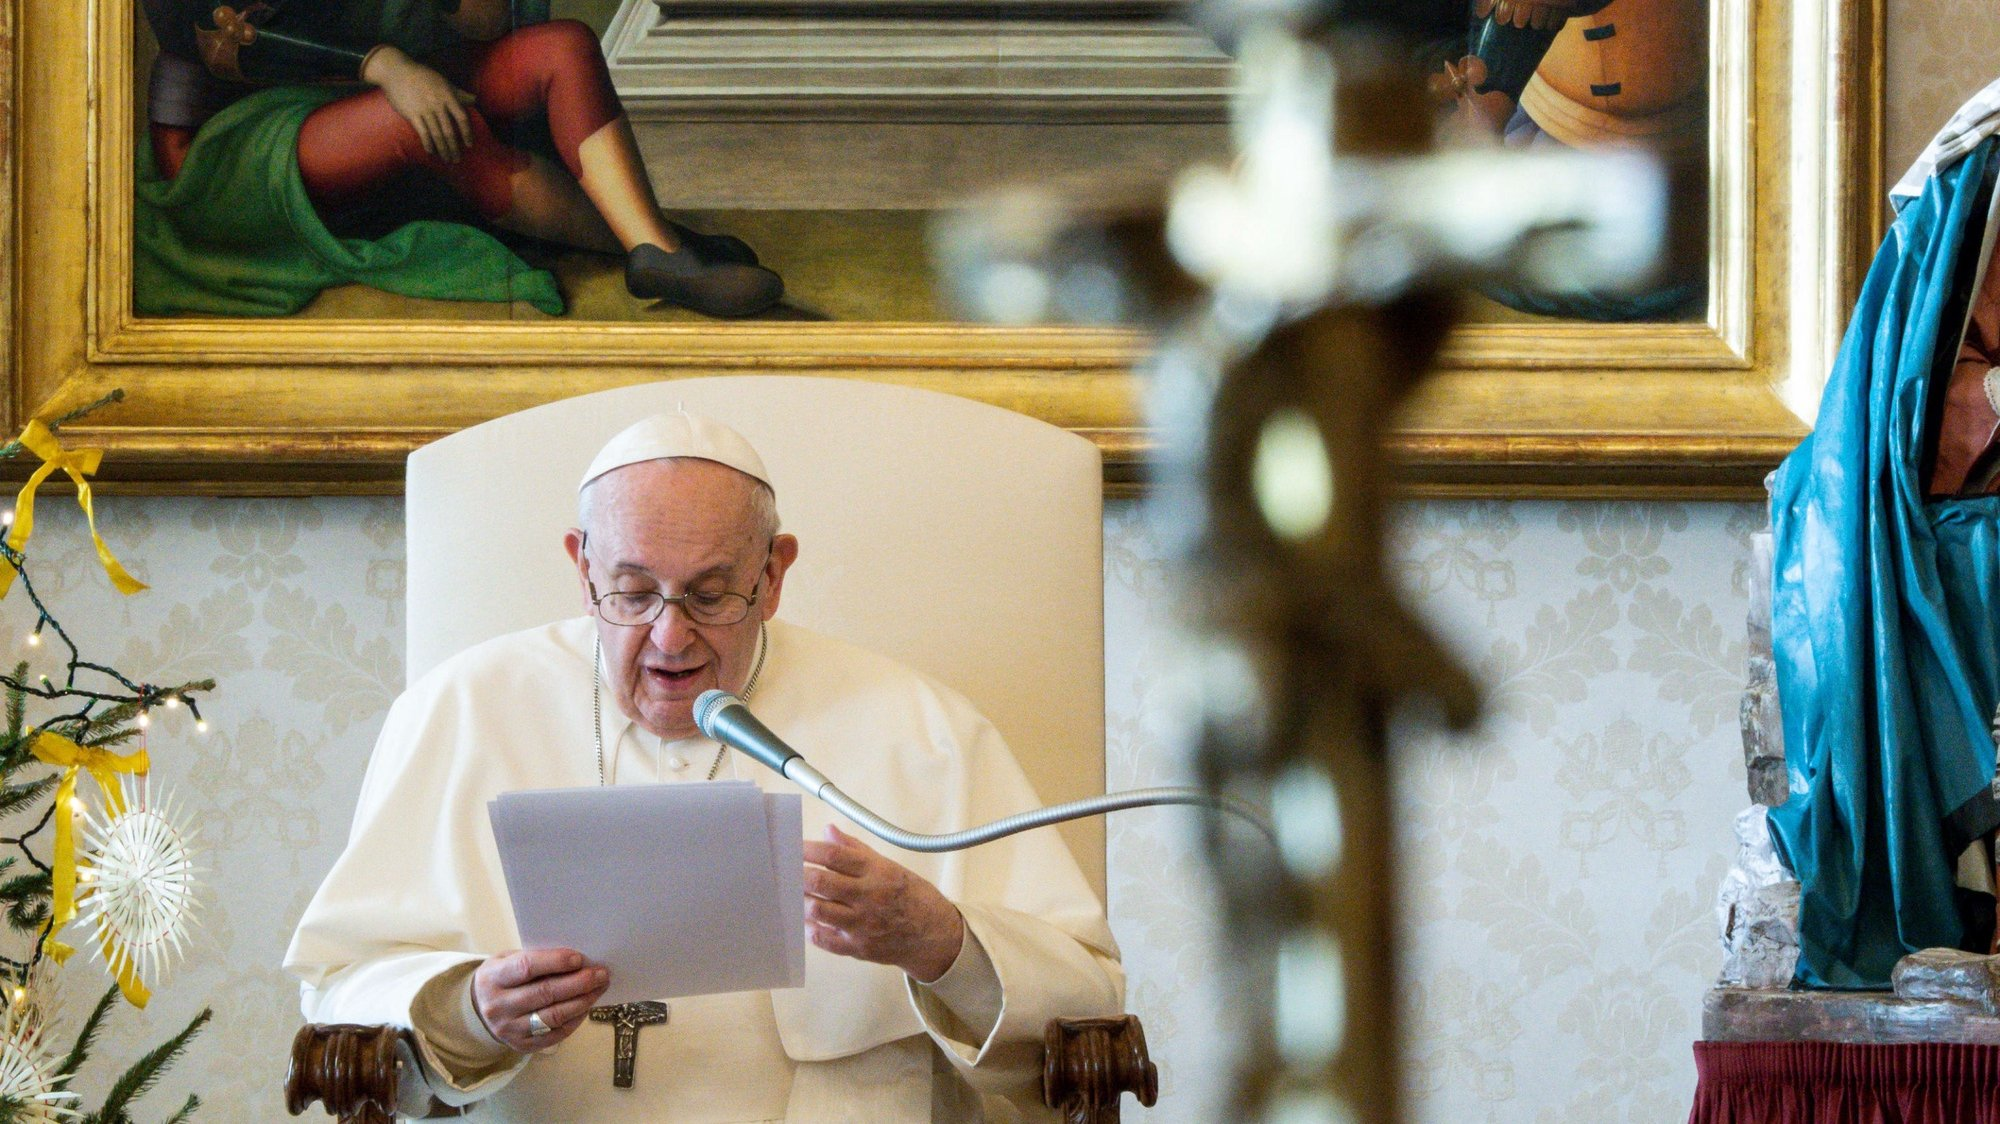 epa08911015 A handout picture provided by the Vatican Media shows Pope Francis during his weekly general audience held inside the Library of the Apostolic Palace, in Vatican City, 30 December 2020.  EPA/VATICAN MEDIA HANDOUT  HANDOUT EDITORIAL USE ONLY/NO SALES